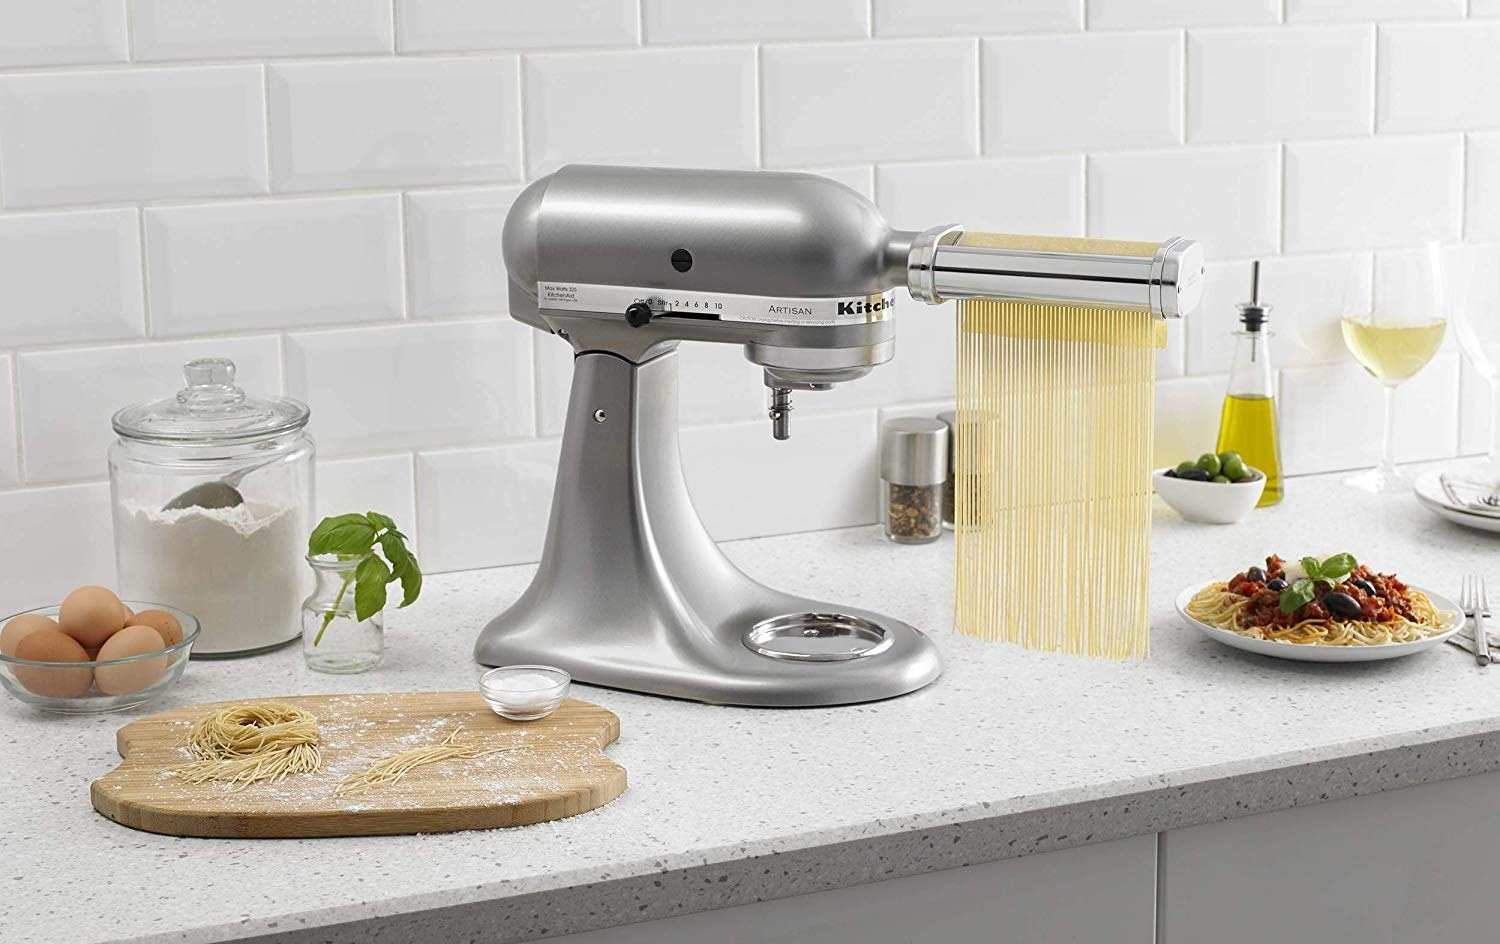 The mixer with a pasta attachment on its head